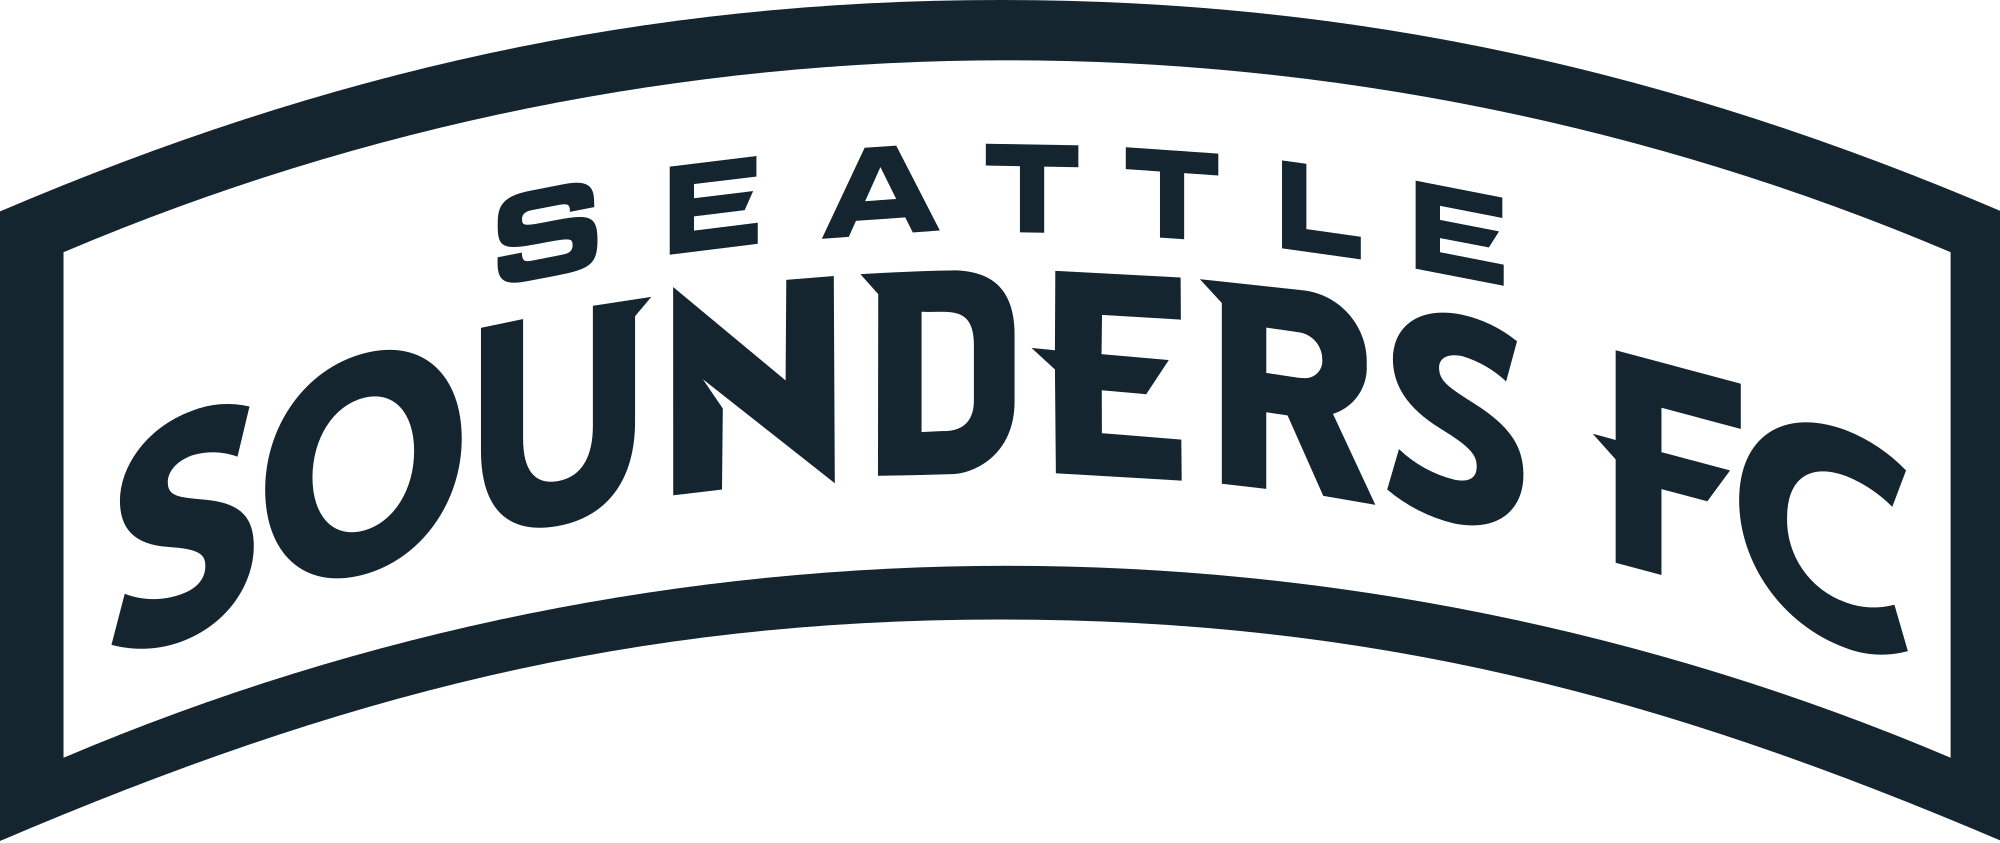 Crest banner png. File seattle sounders fc